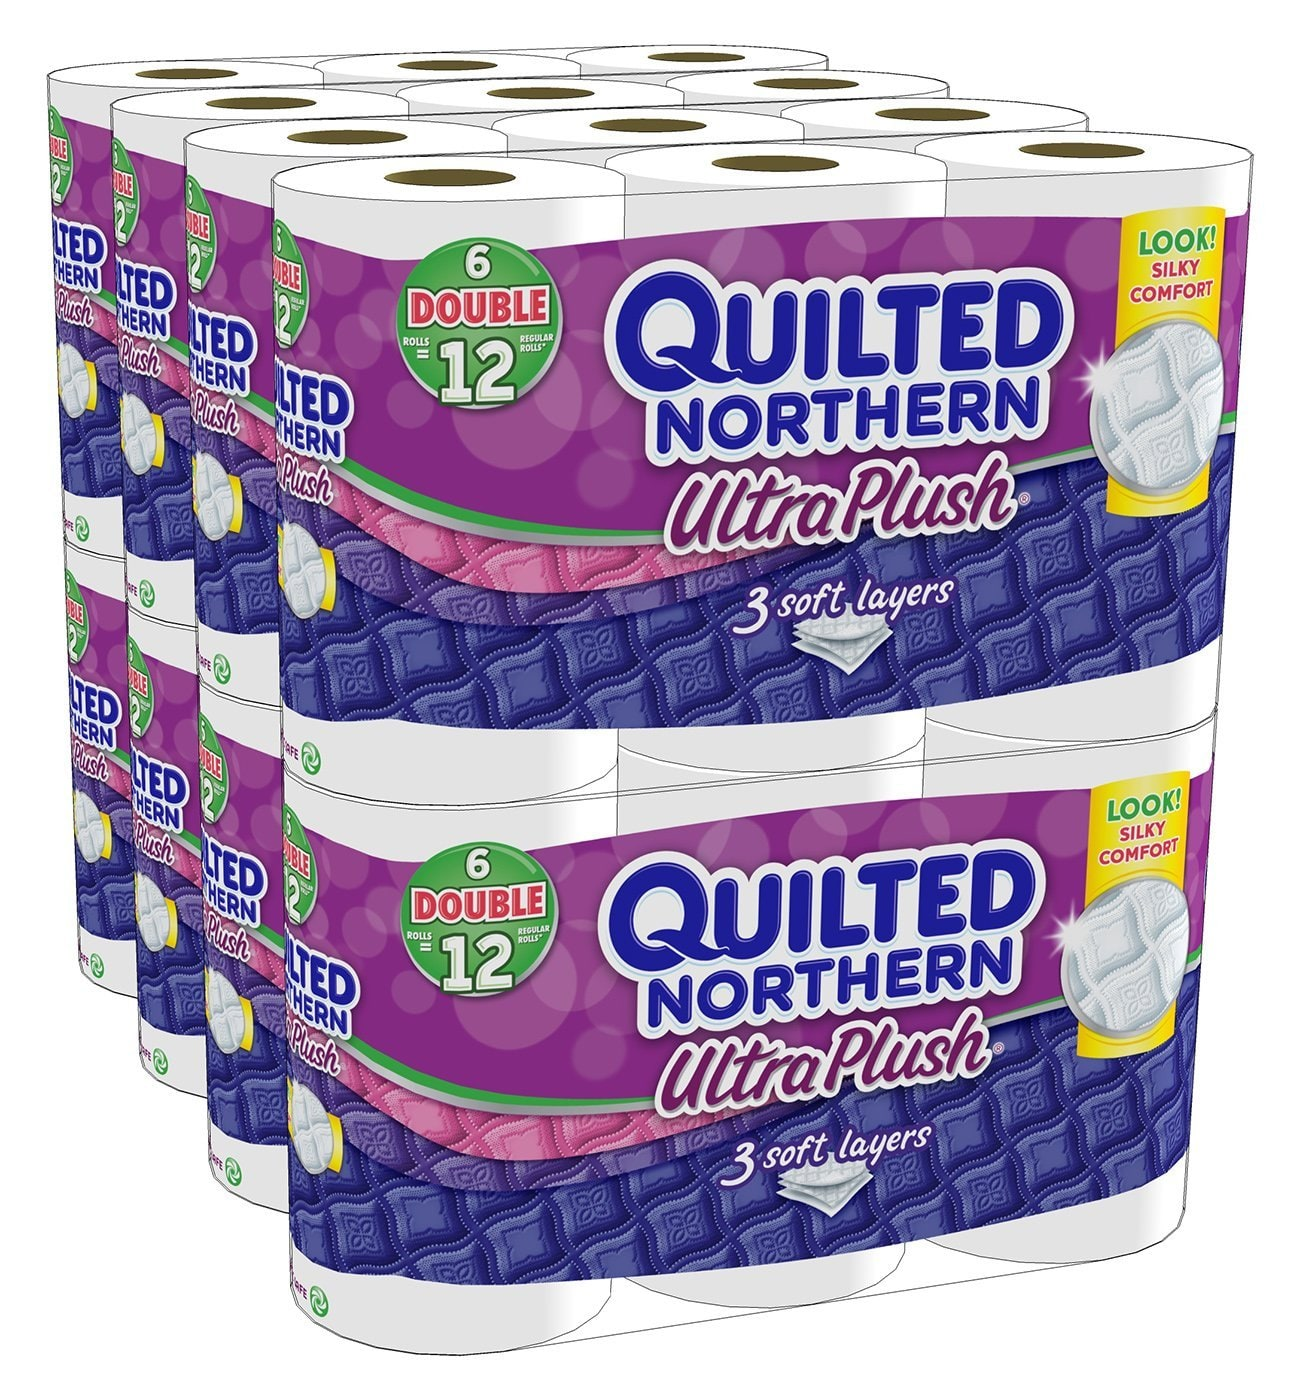 Quilted Northern Ultra Plush Bath Tissue, 48 Double Rolls - $20,49 ($0.42 per roll) or lower w/ Free Prime Shipping